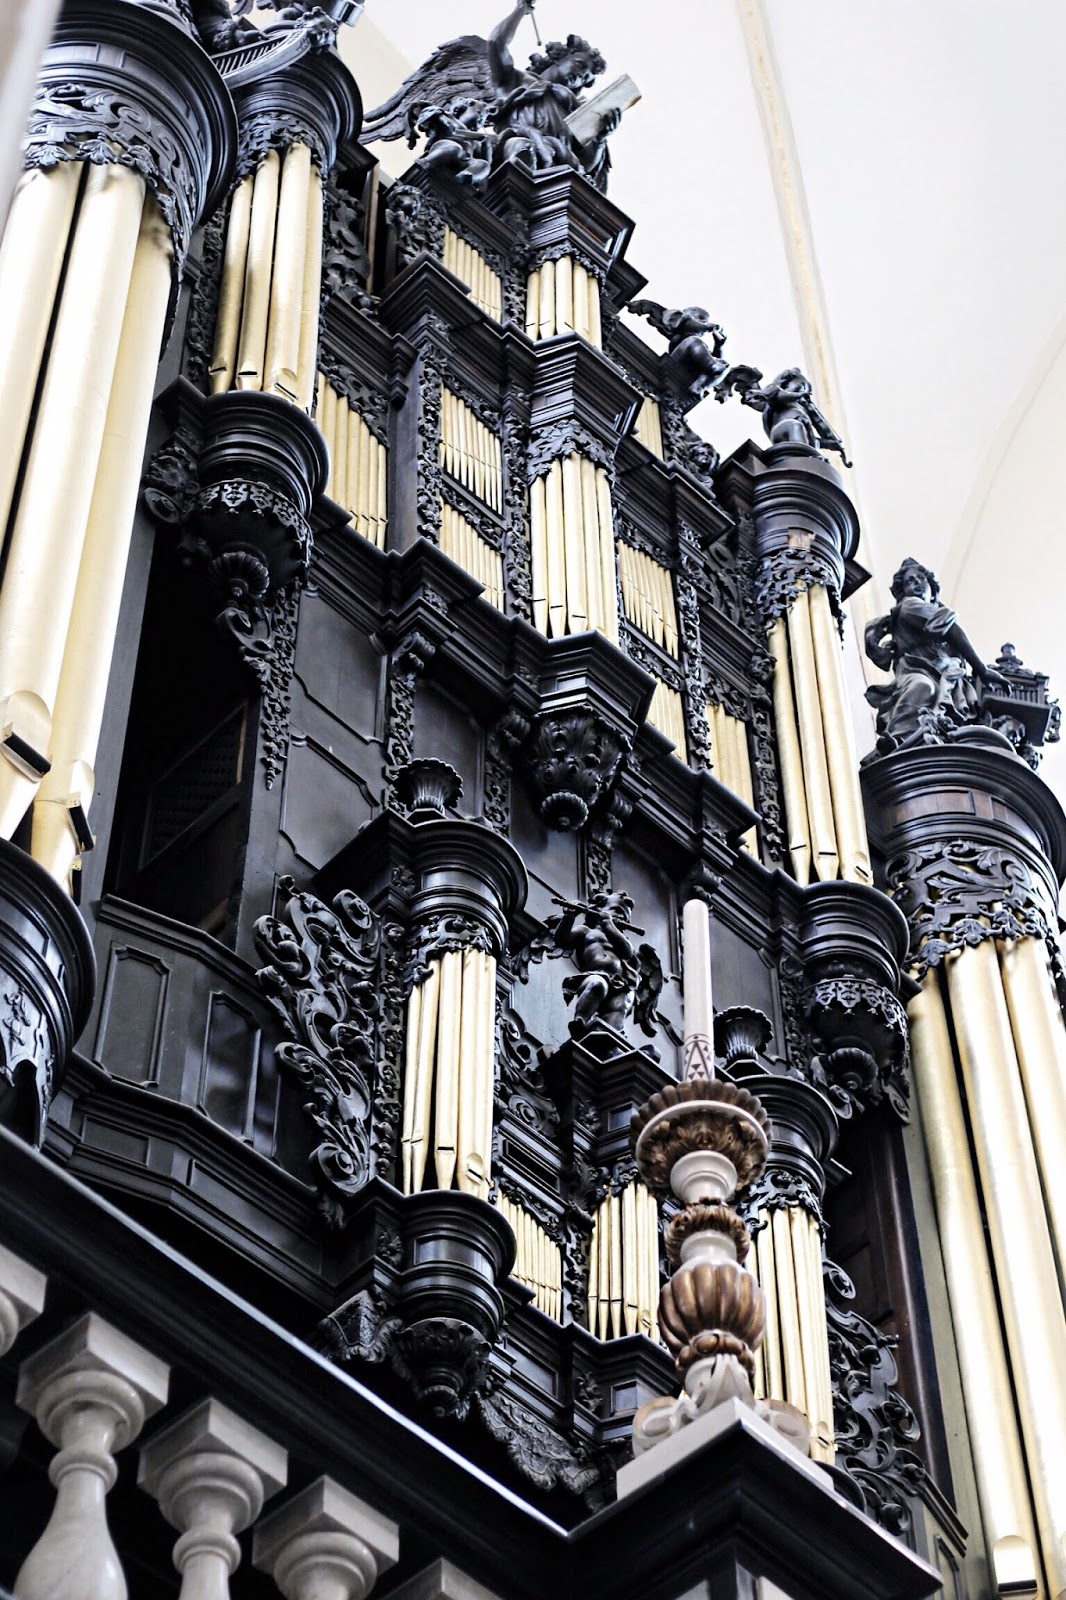 Ornate Black and Gold Organ Church